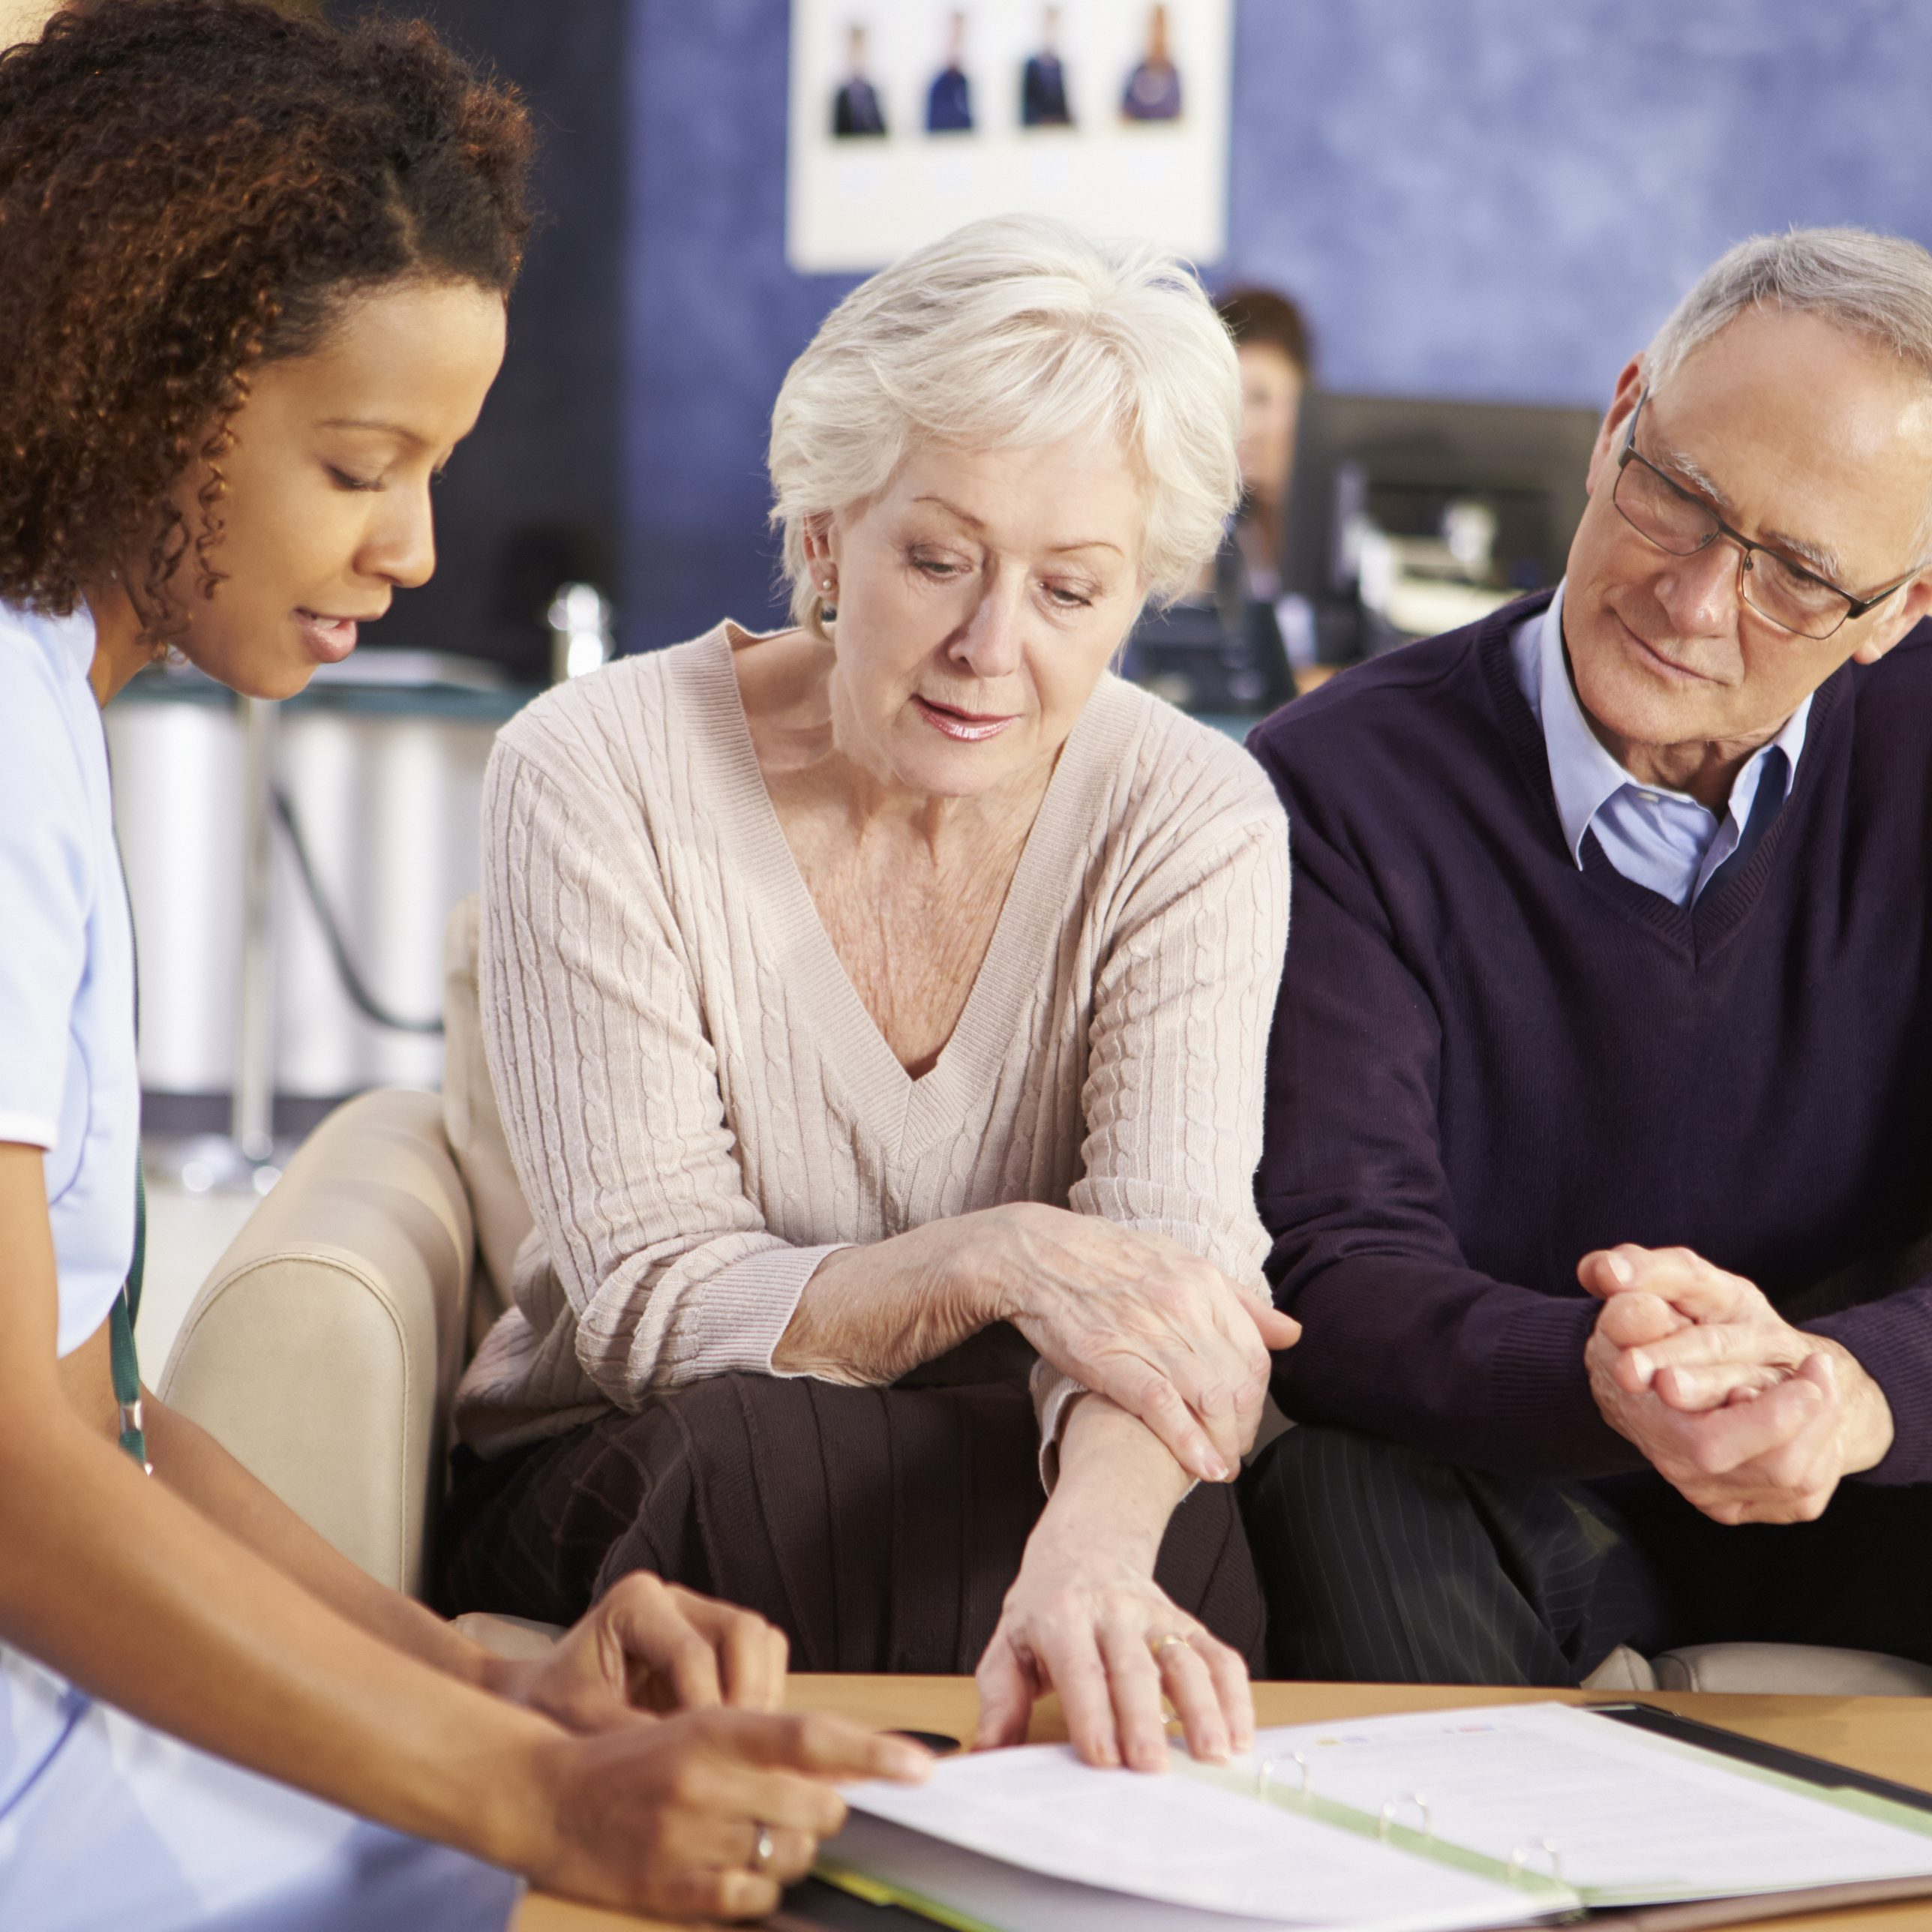 Senior Couple Meeting With Nurse In Hospital Discussing Patients Records